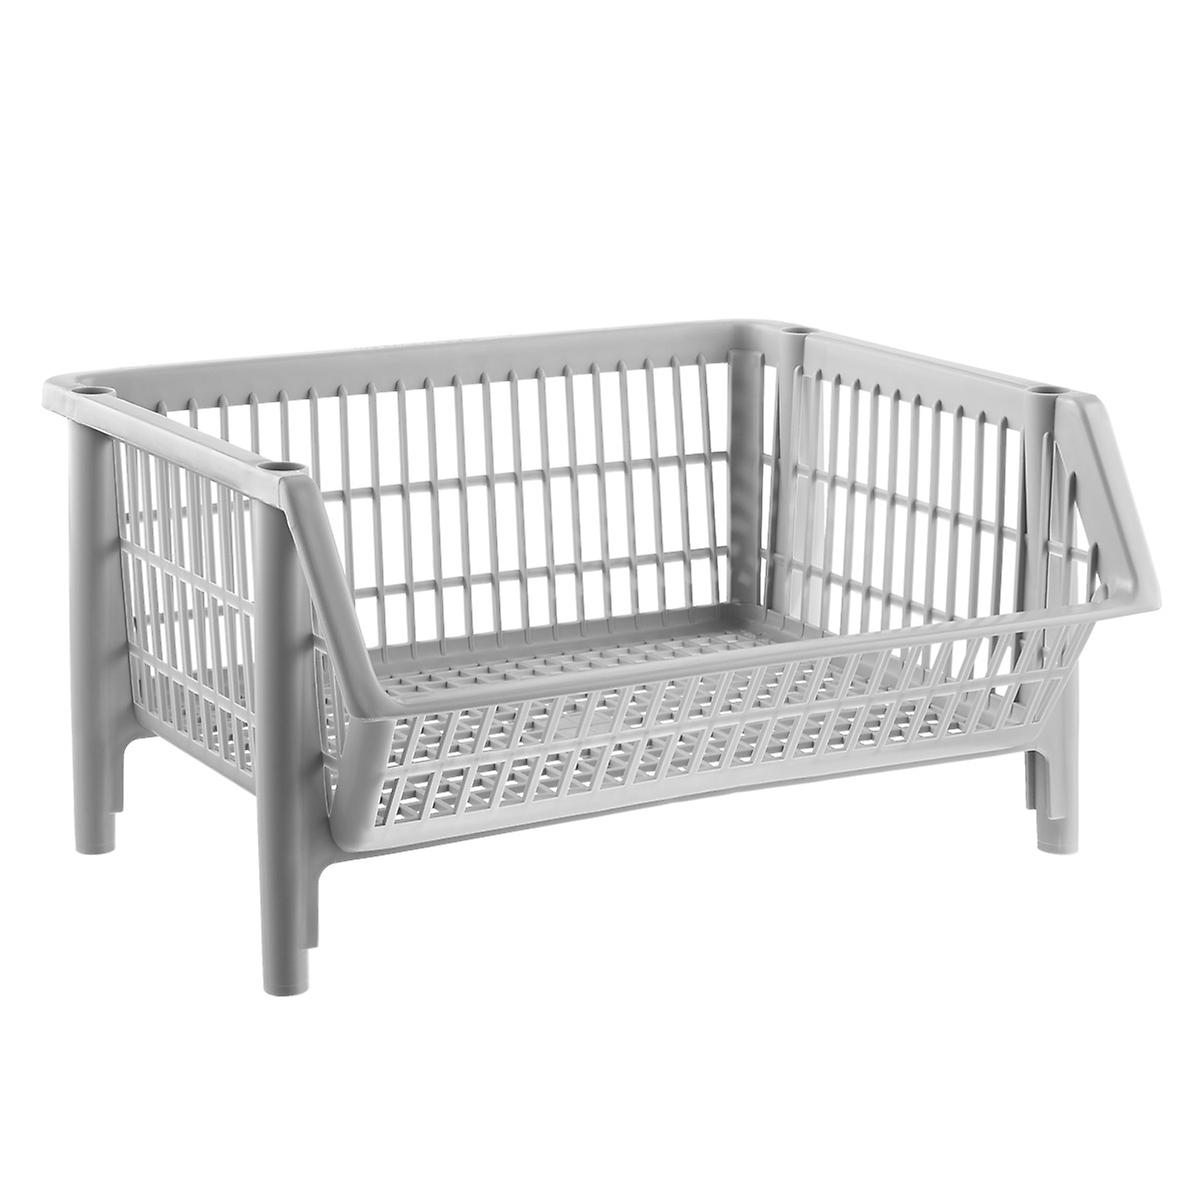 Our Basic Light Grey Stackable Basket